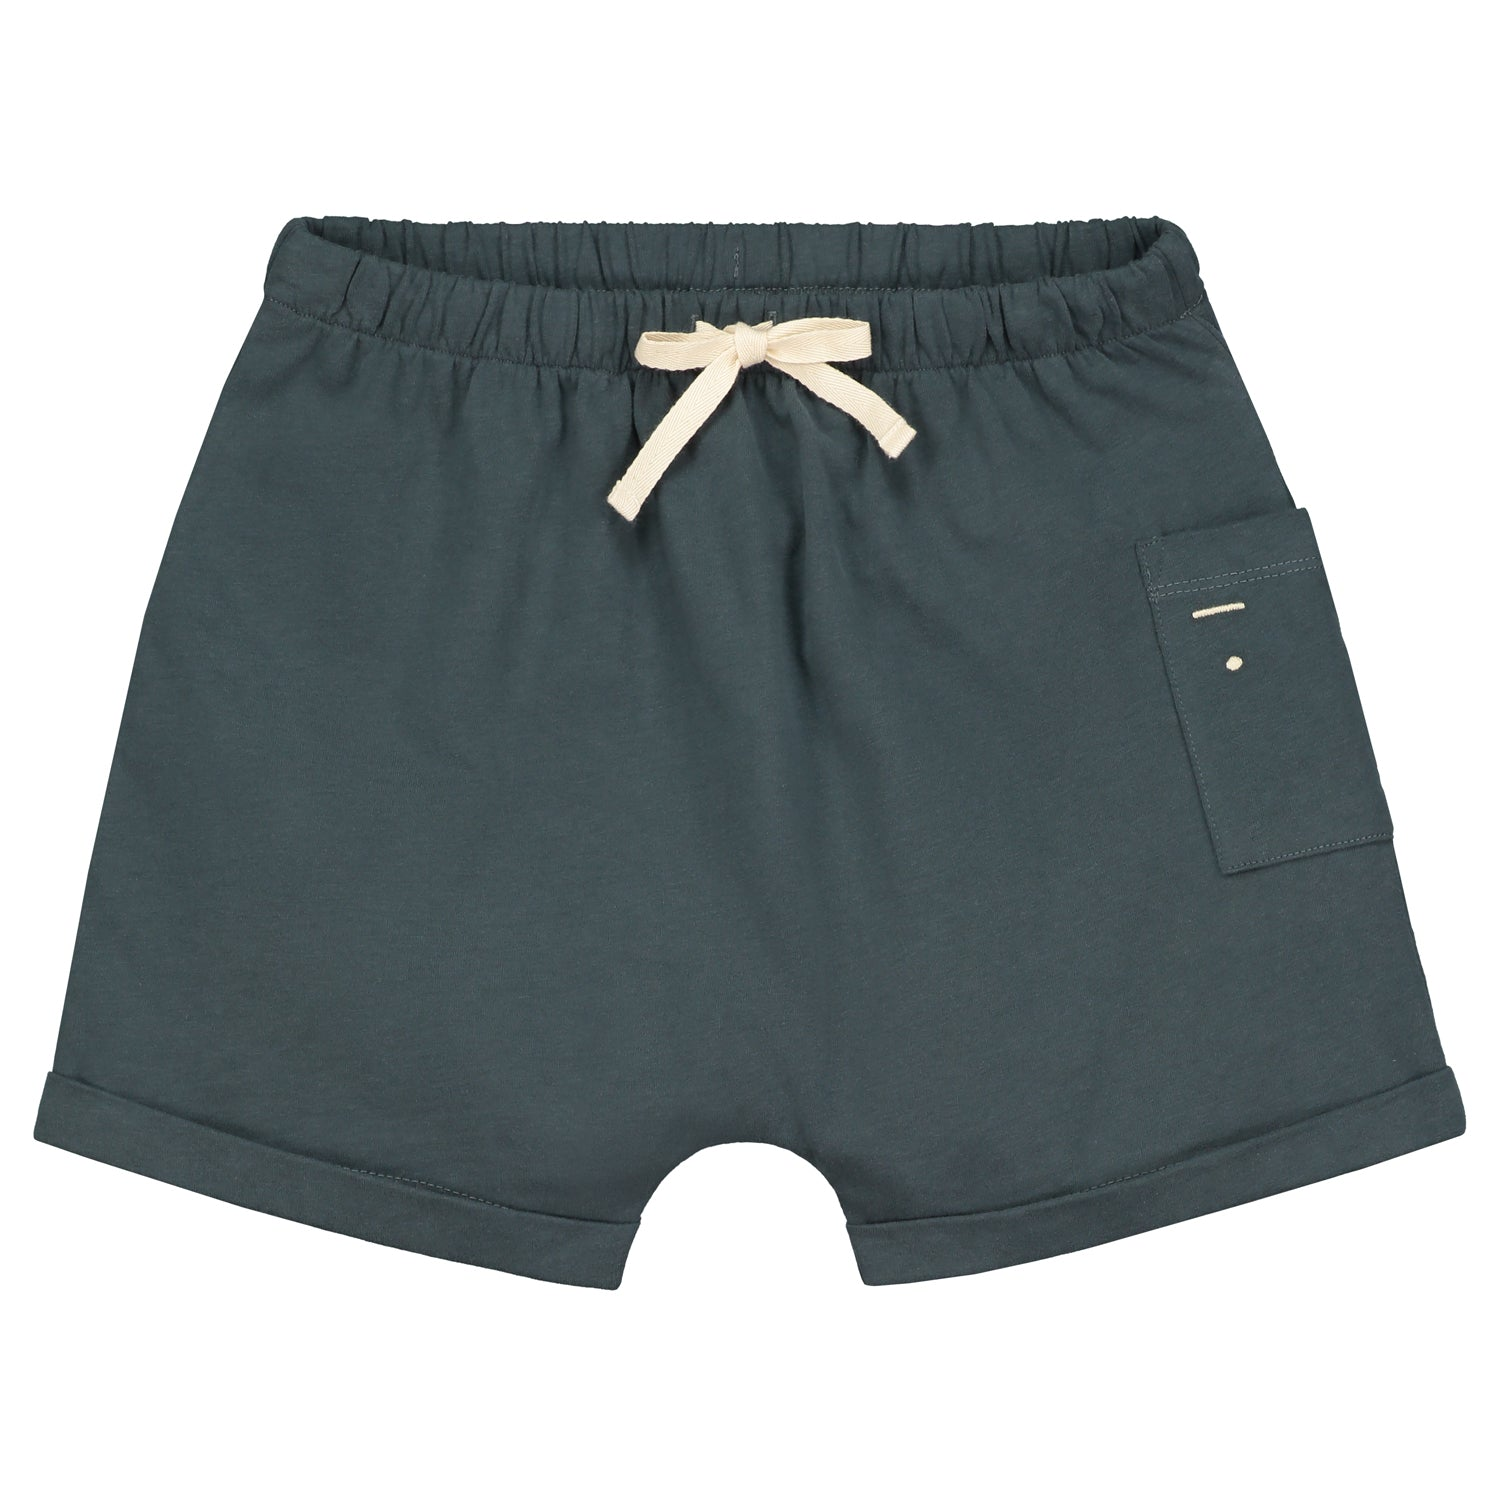 Short One Pocket Blue Grey